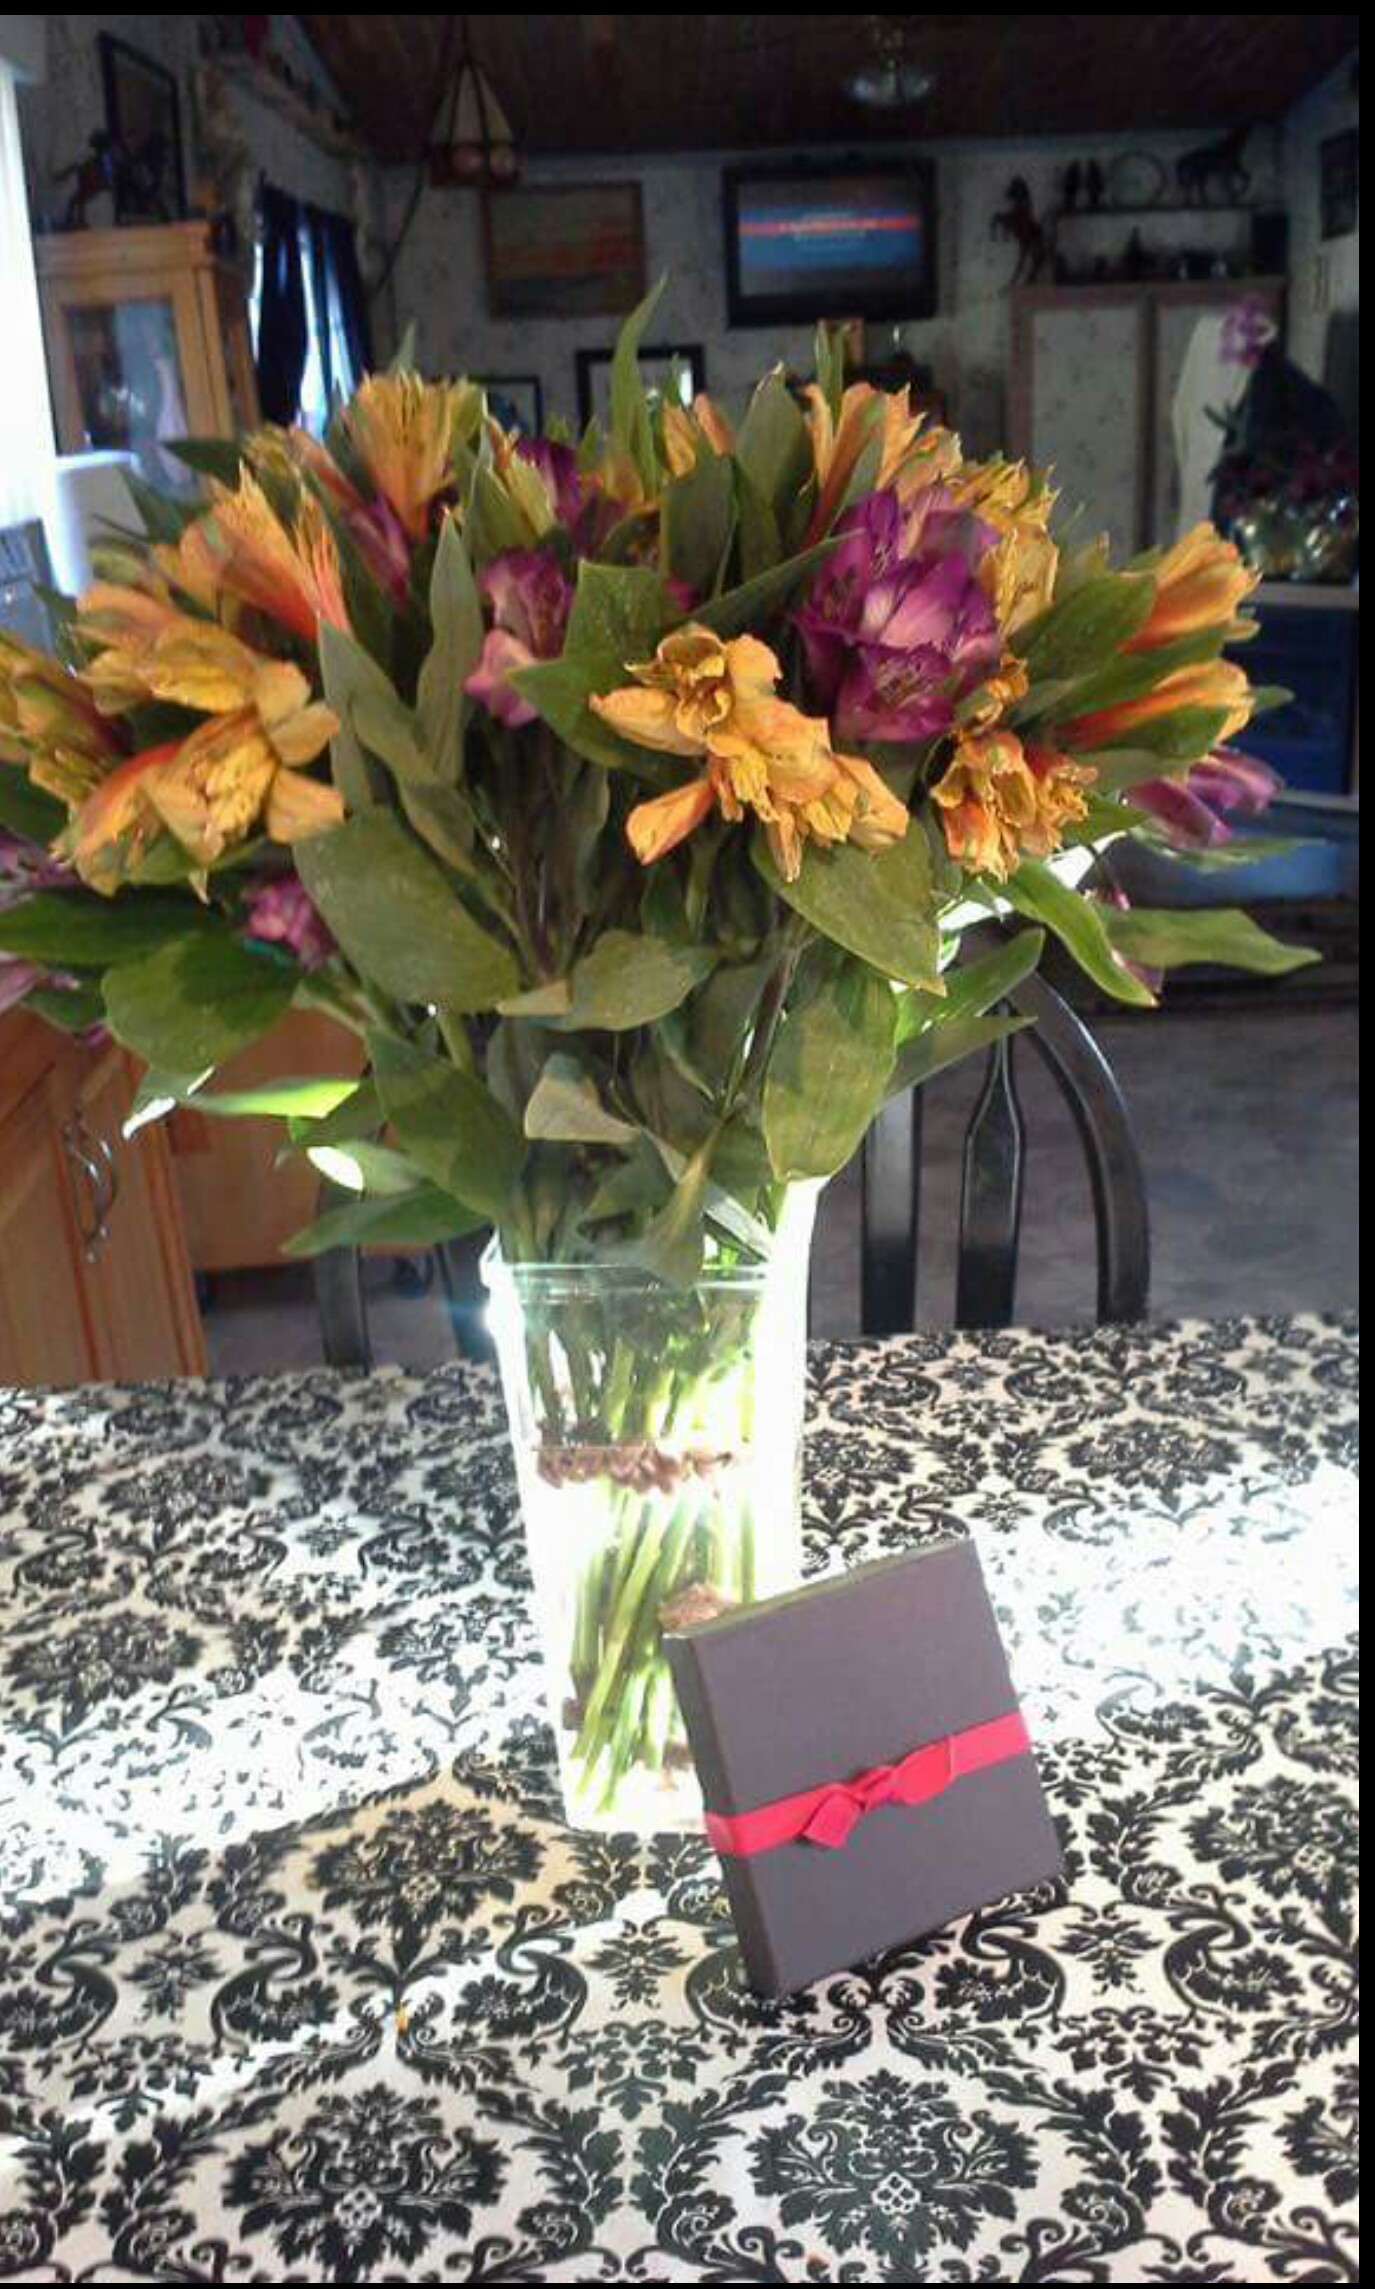 Top 10 reviews of proflowers ask if i would like to make an order email worked best so far although no resolution both orders have been delivered but both look terribly wilted reviewsmspy